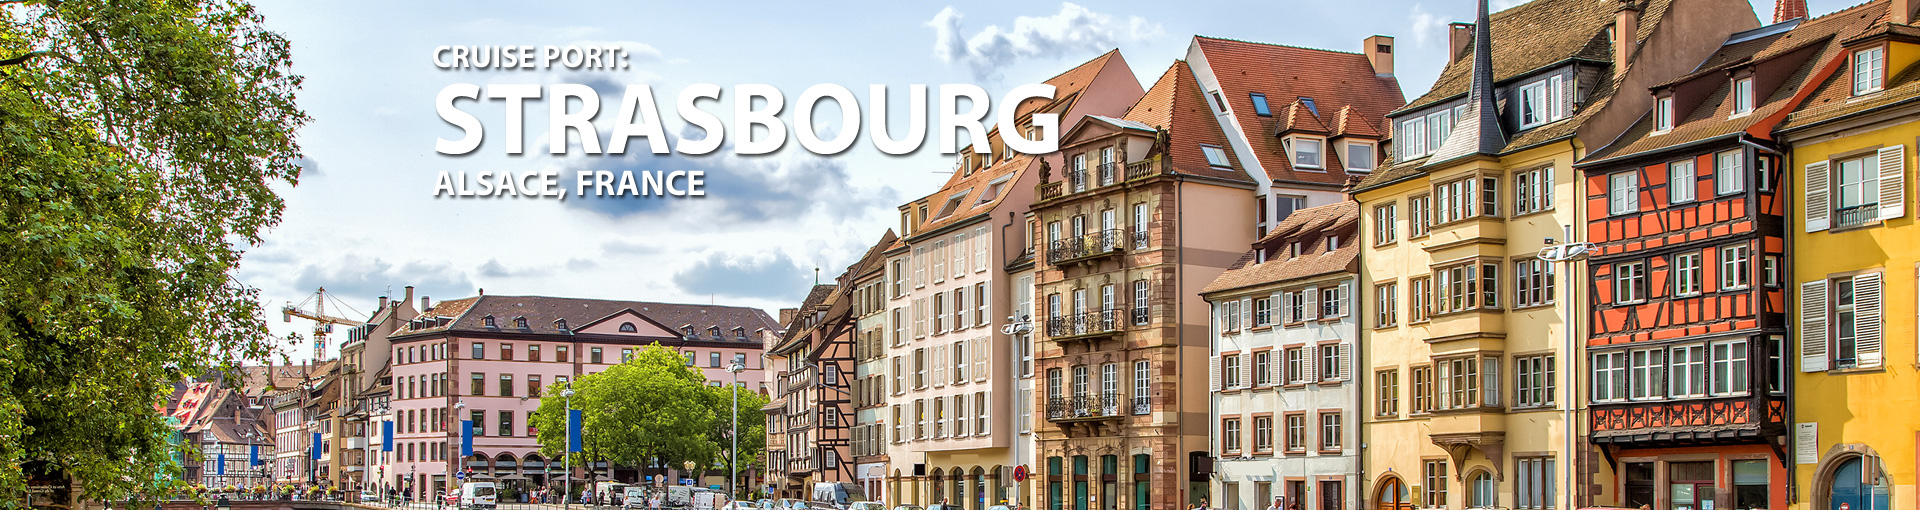 Cruises to Strasbourg, Alsace, France